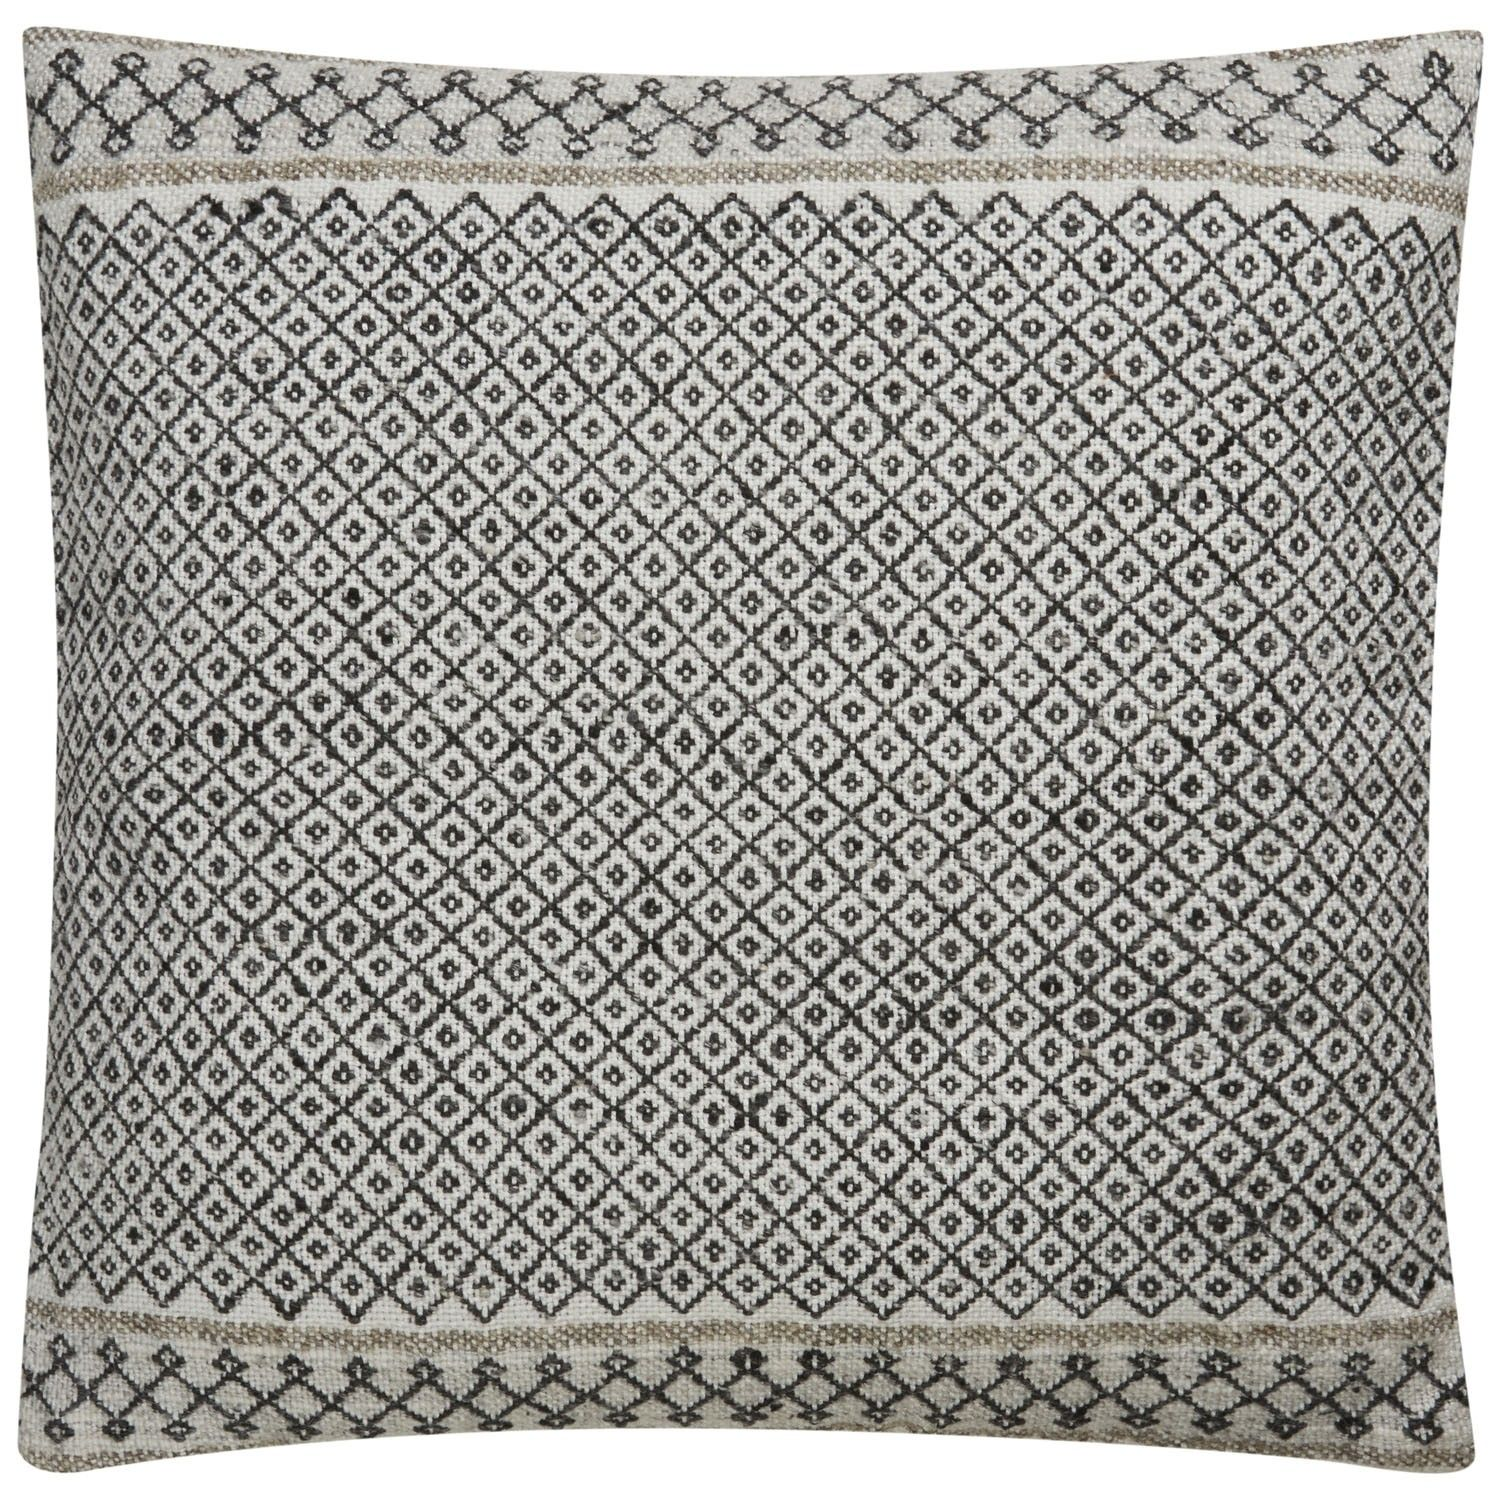 Made Of Viscose, Bamboo And Wool, Our Iwona Pillow Is